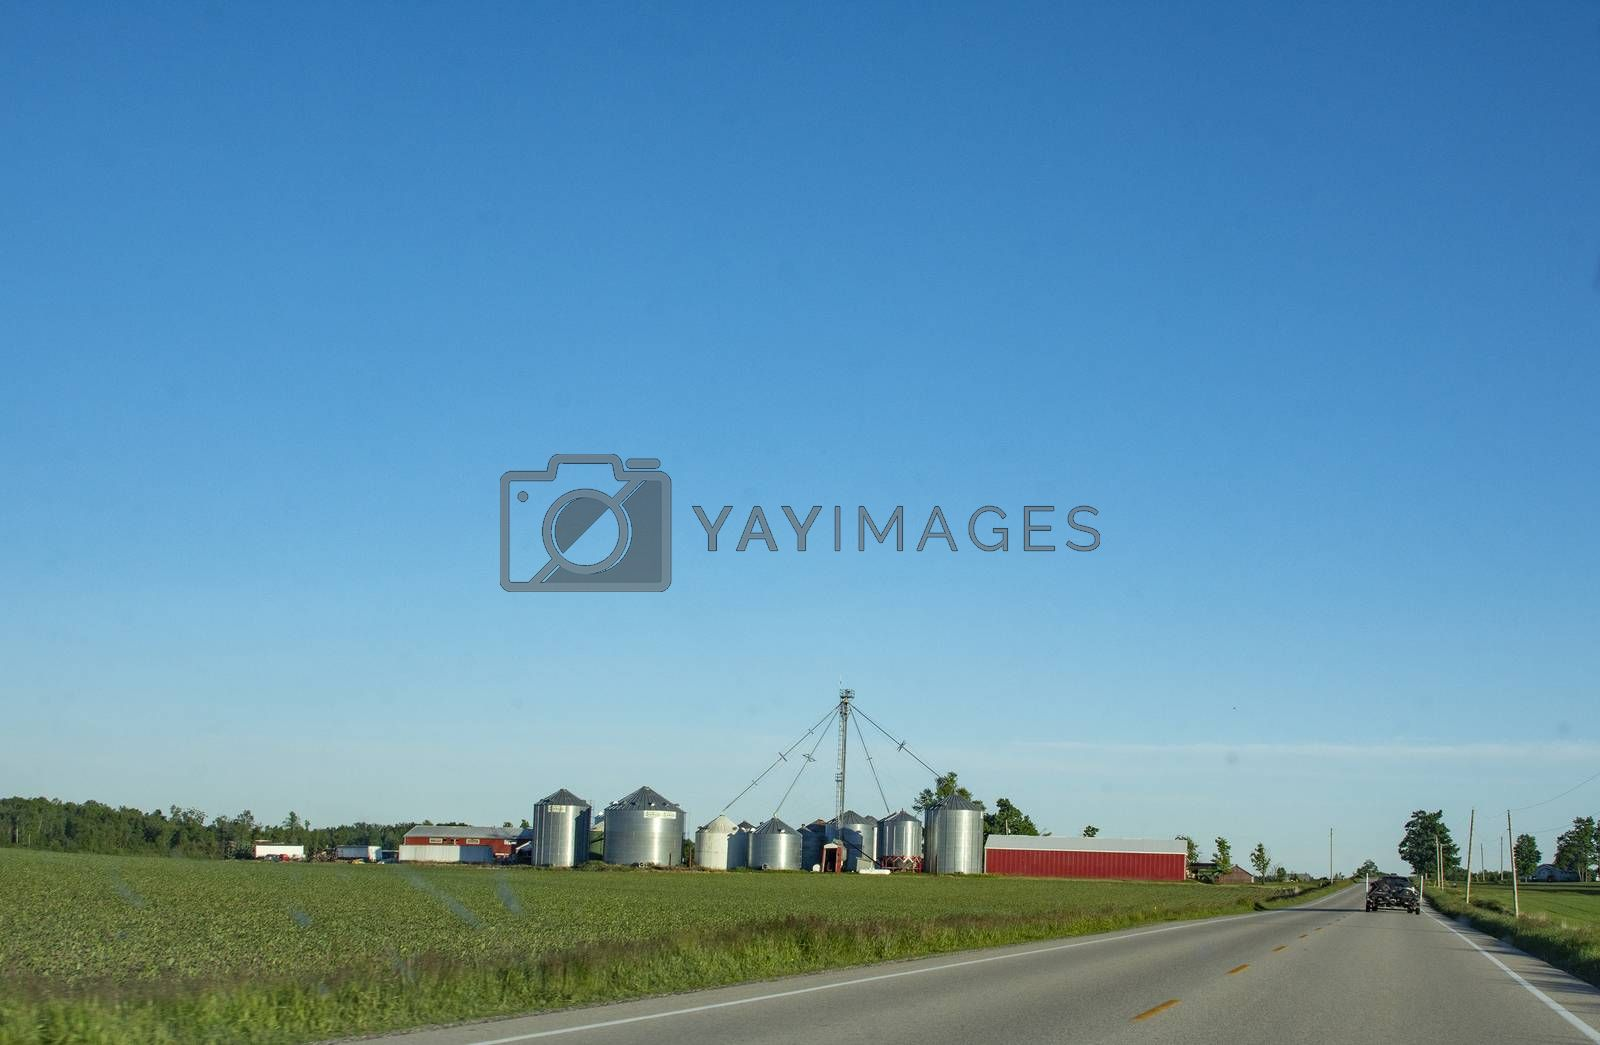 Farm buildings at the end of a large field that stretches along the road